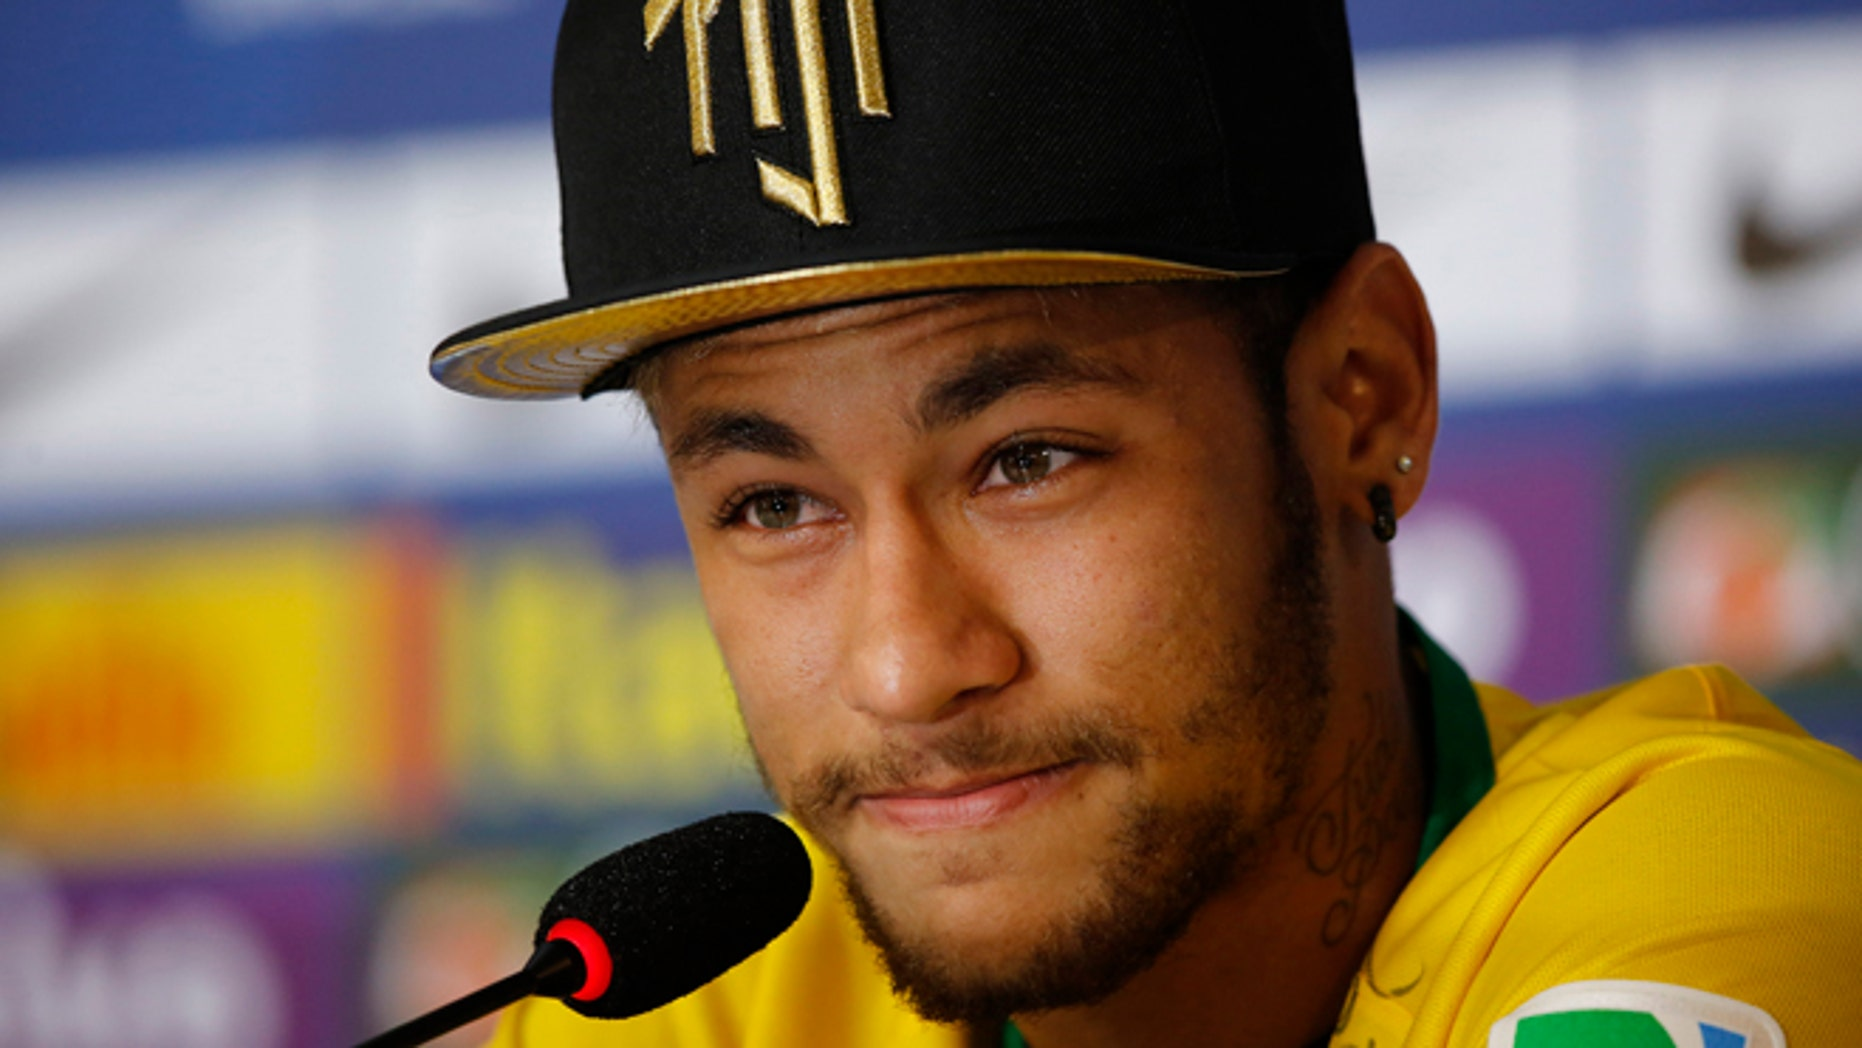 Brazil's Neymar talks to the media a press conference at the Granja Comary training center in Teresopolis, Brazil, Thursday, July 10, 2014. The Brazilian soccer star is back on his feet after suffering a broken vertebrae during a World Cup soccer match against Colombia. Brazil will be disputing a third place finish, without its star on Saturday. (AP Photo/Leo Correa)